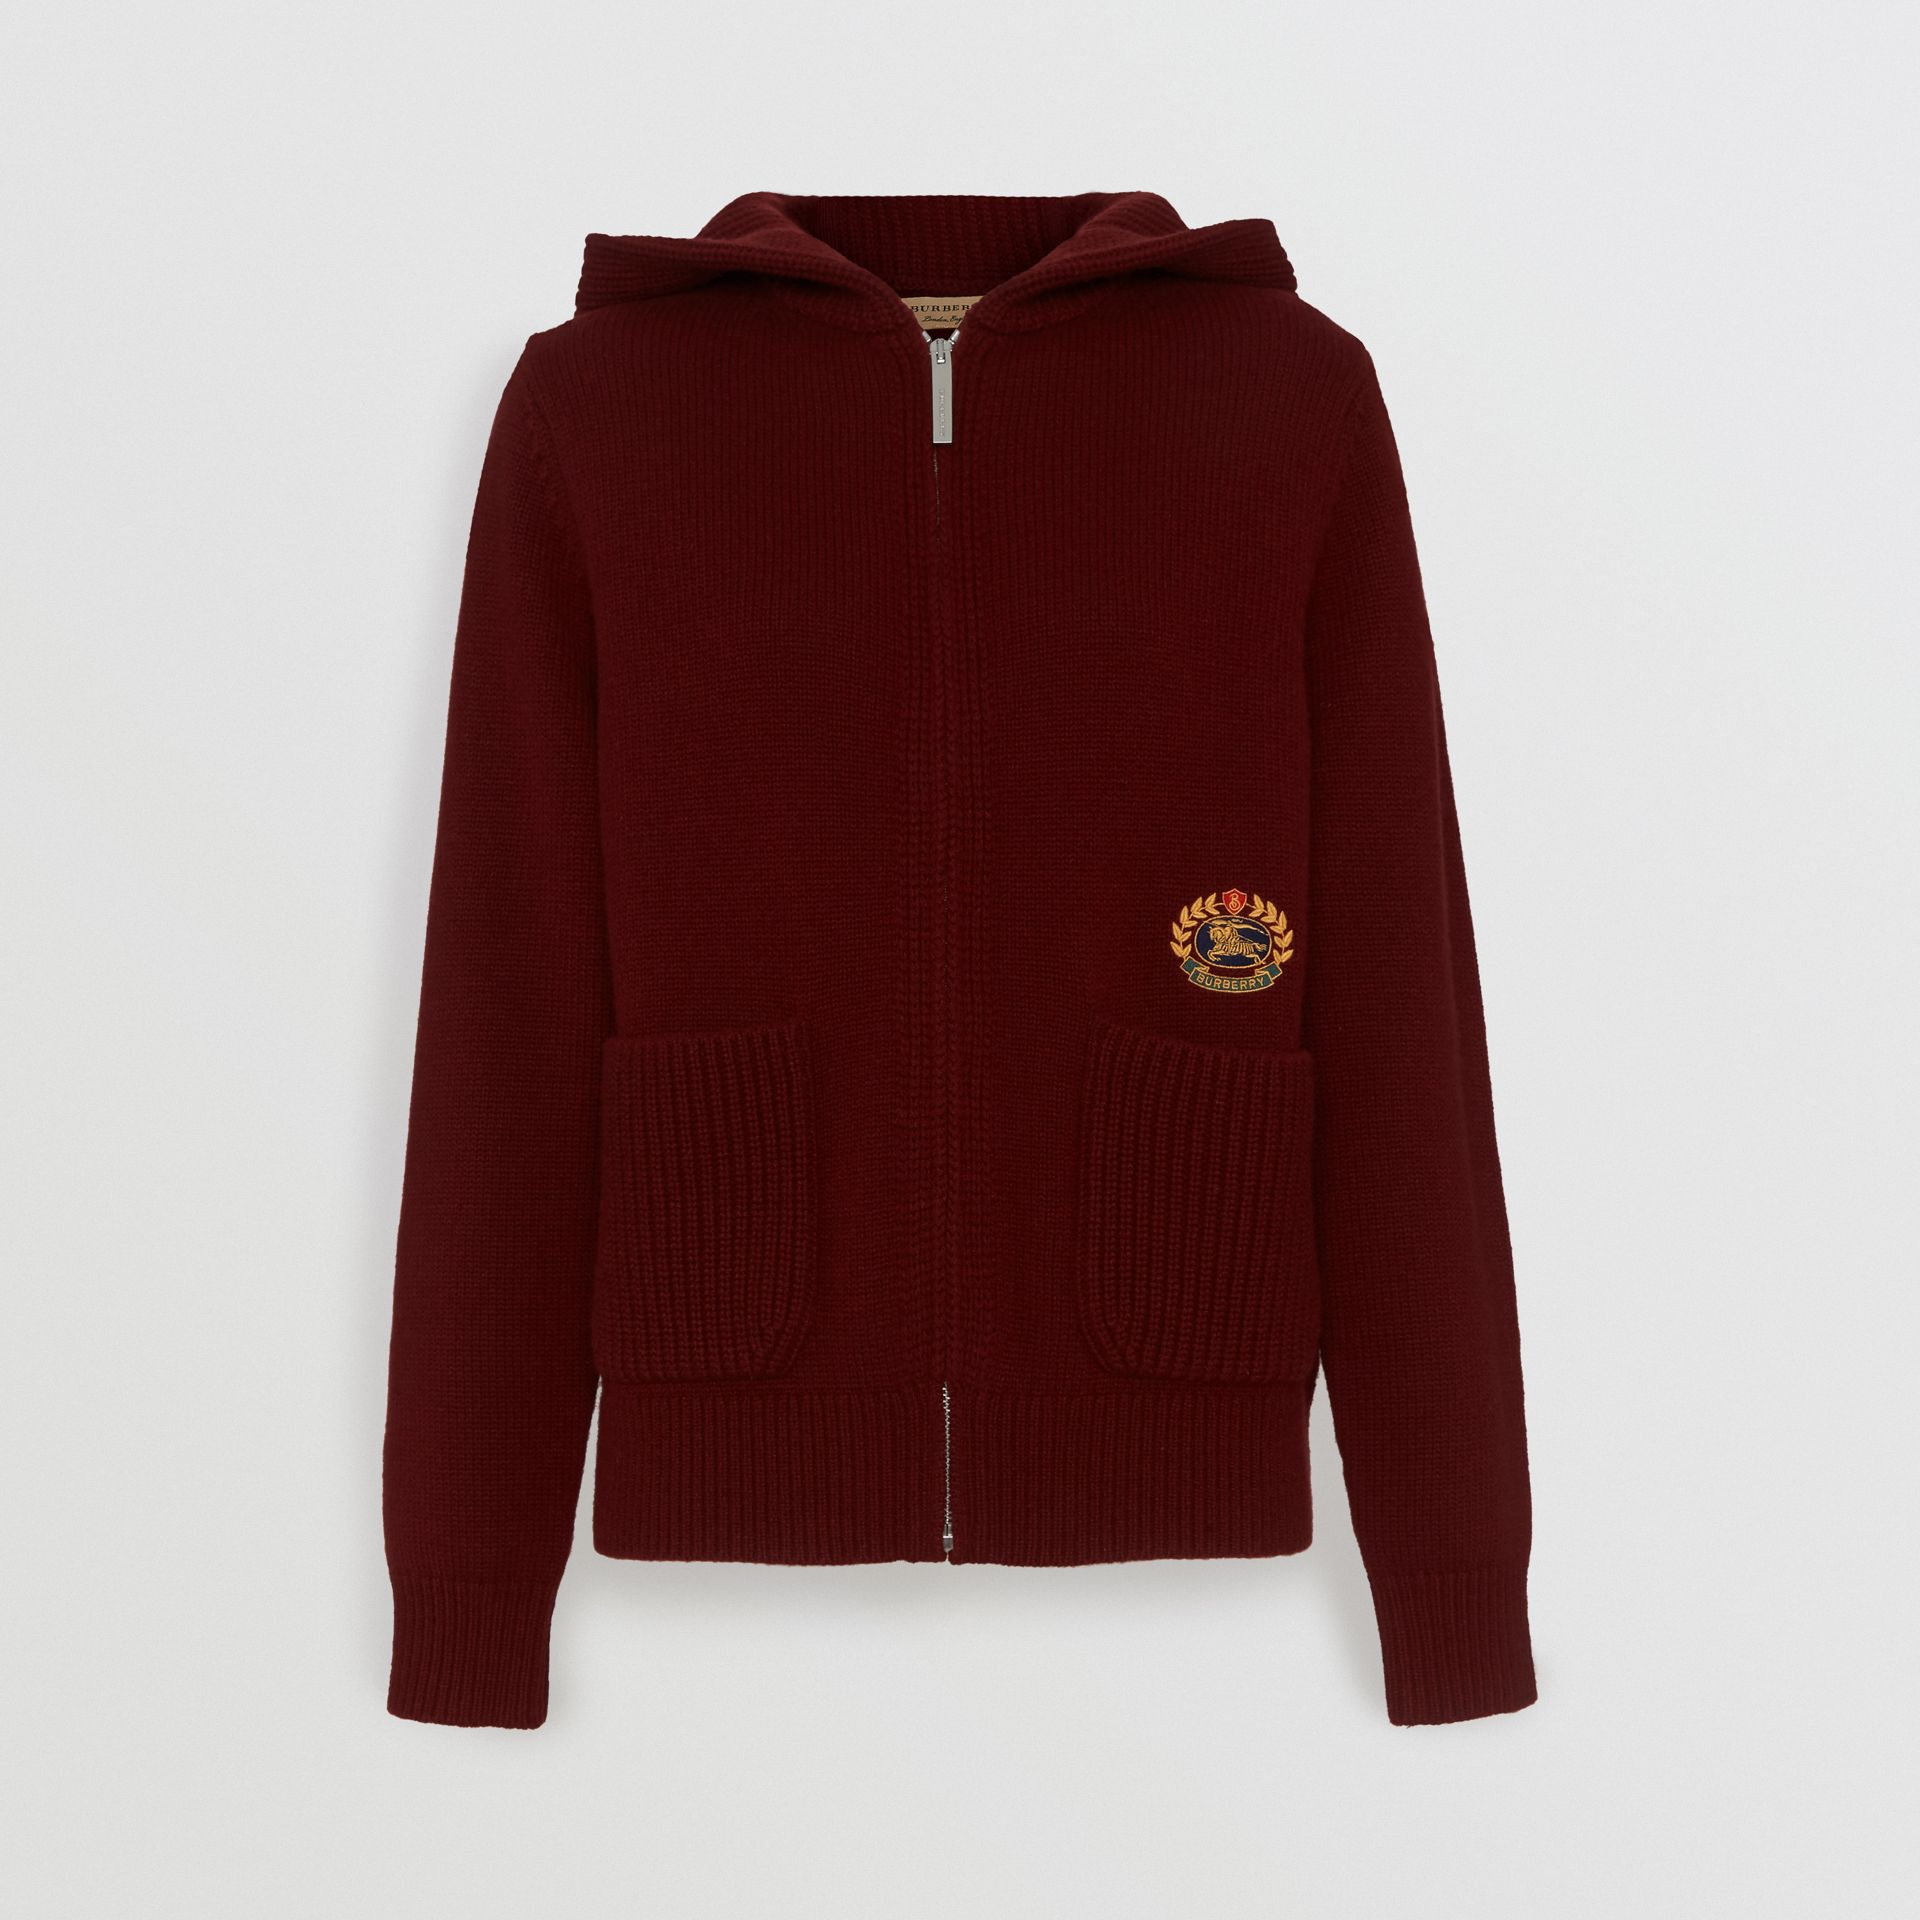 Embroidered Crest Cashmere Hooded Top in Crimson - Women | Burberry - gallery image 3